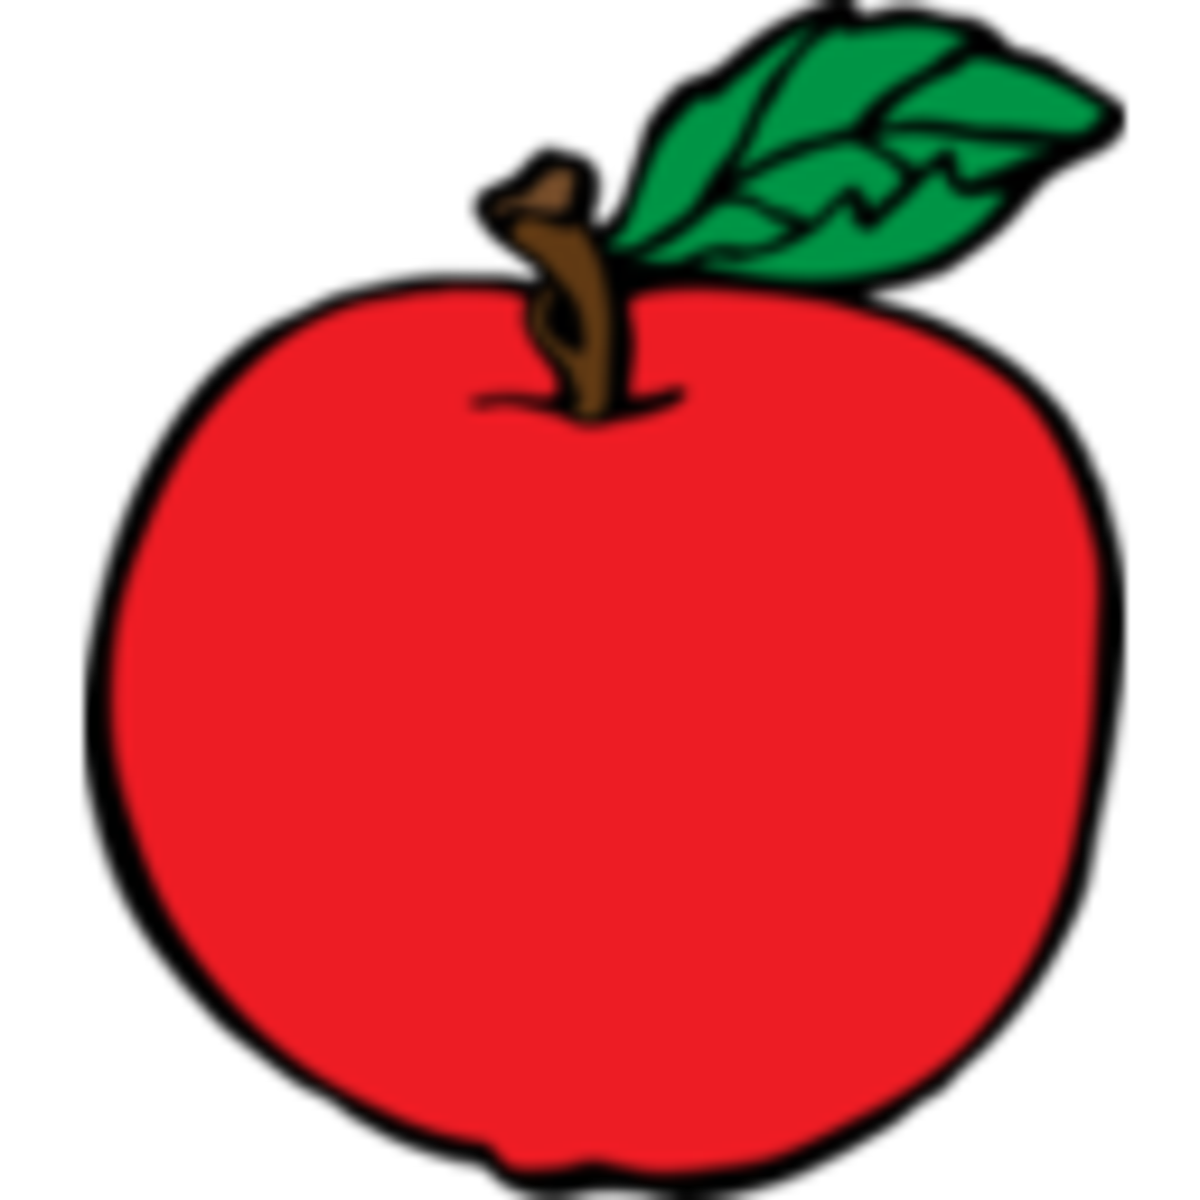 Johnny apple seed clipart picture royalty free Home – Mr. Johnny Appleseed – Richland School District picture royalty free